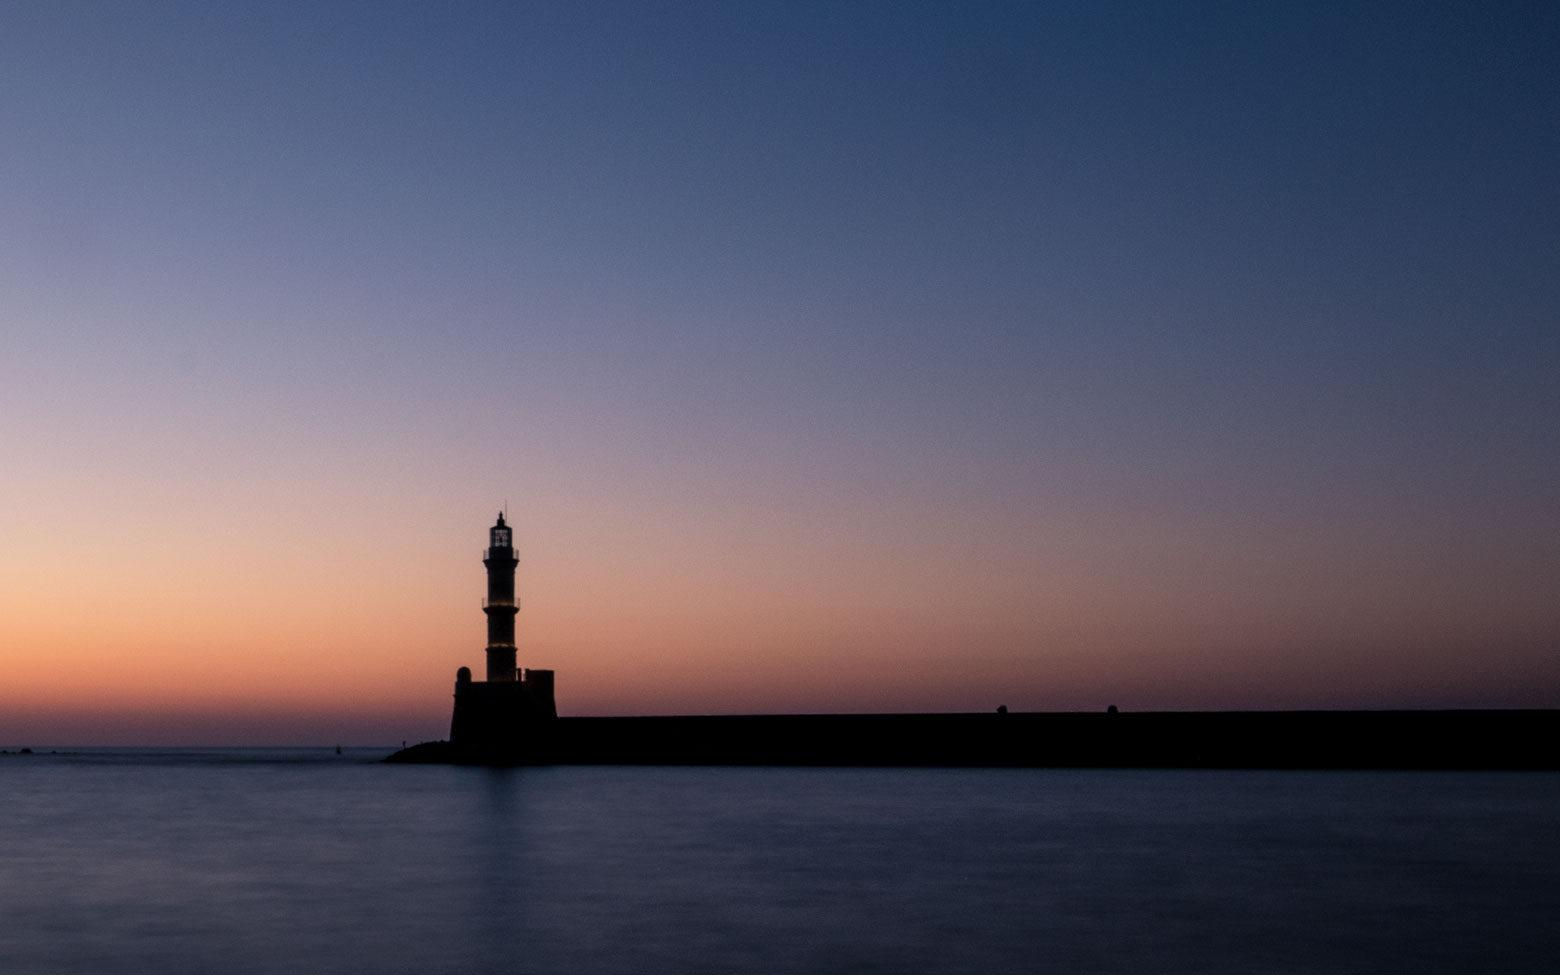 Crete Photo - Lighthouse of Chania